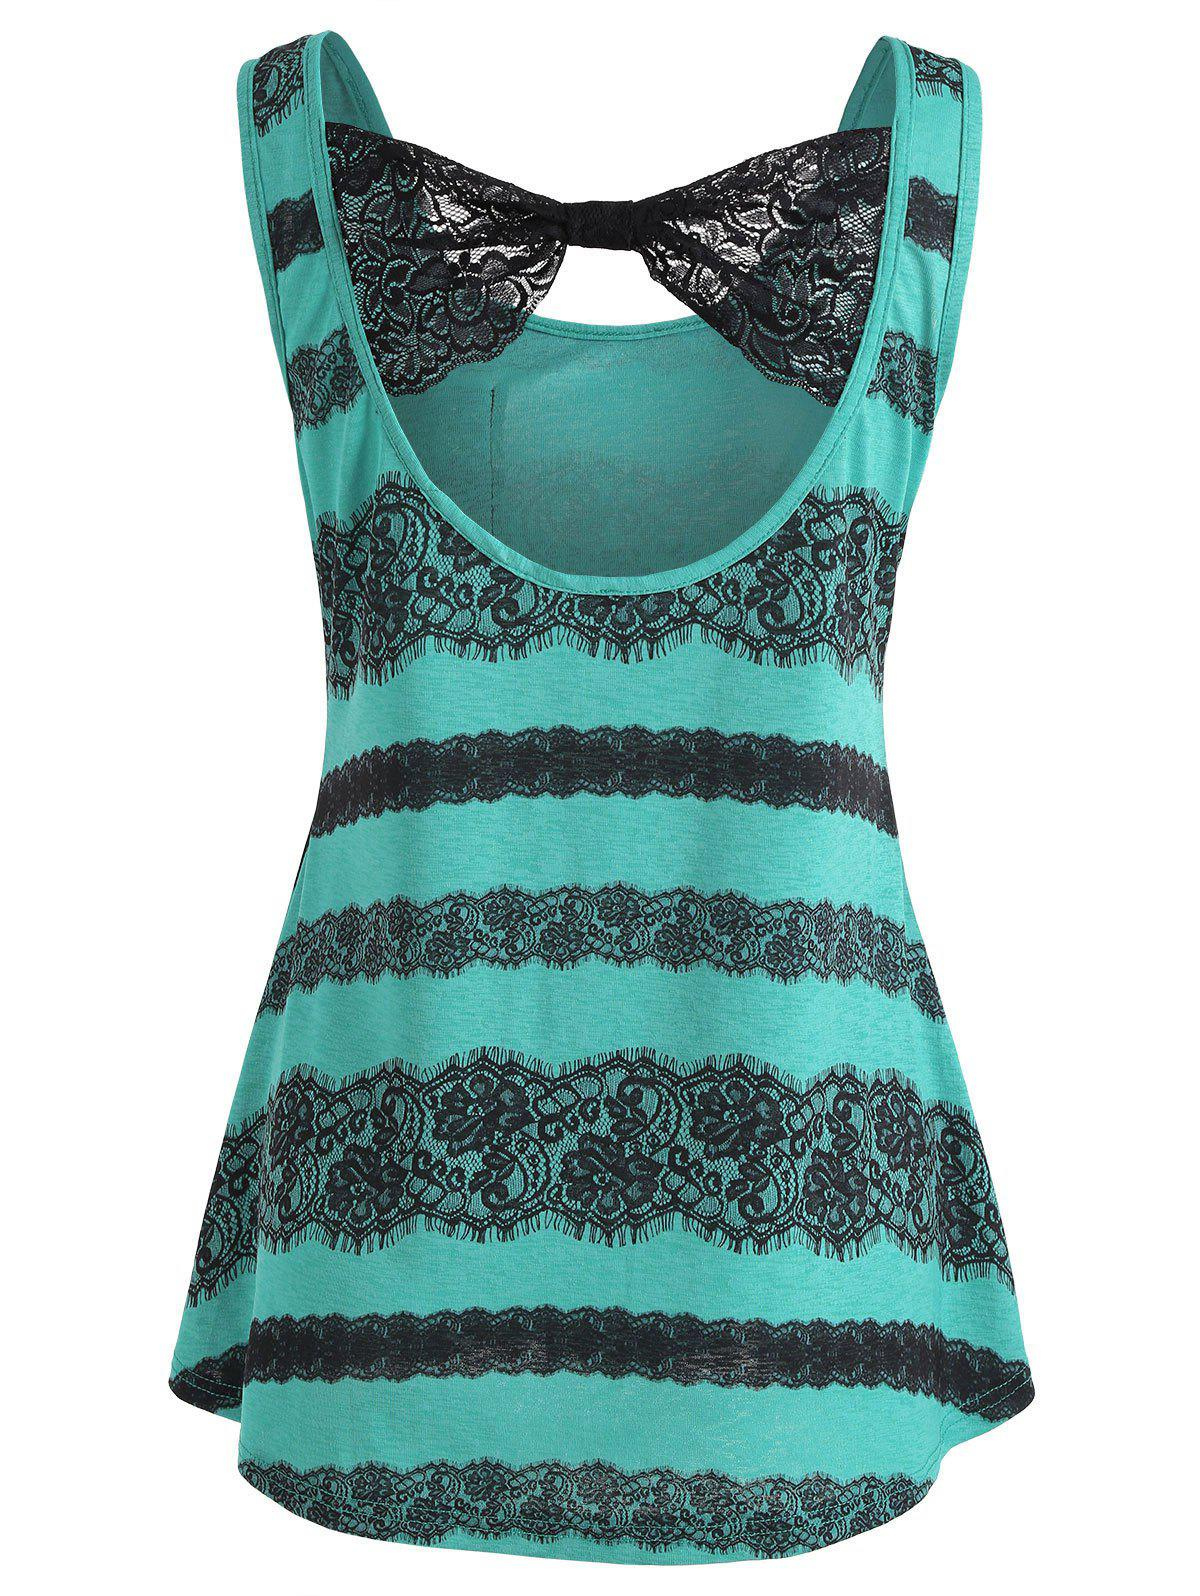 Lace Panel Low Back Tank Top - GREENISH BLUE M